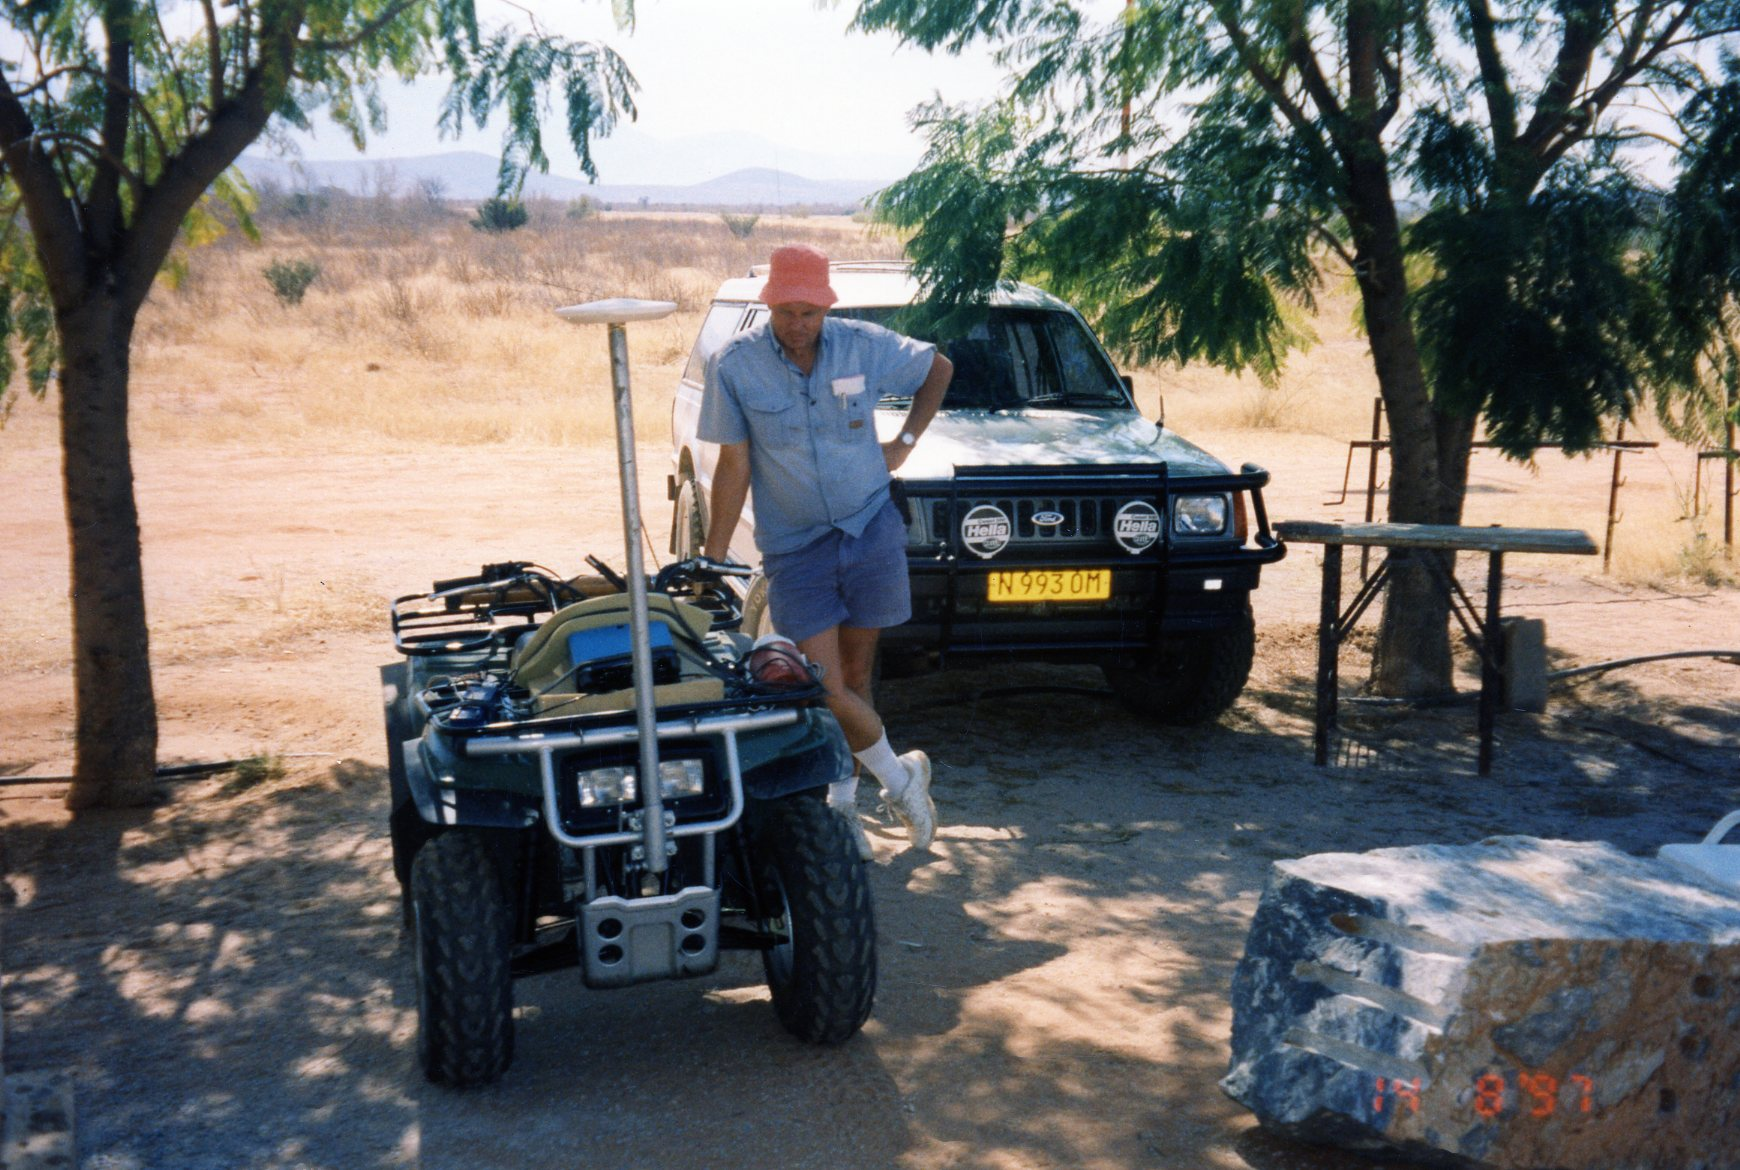 quad bike GPS surveying in Namibia